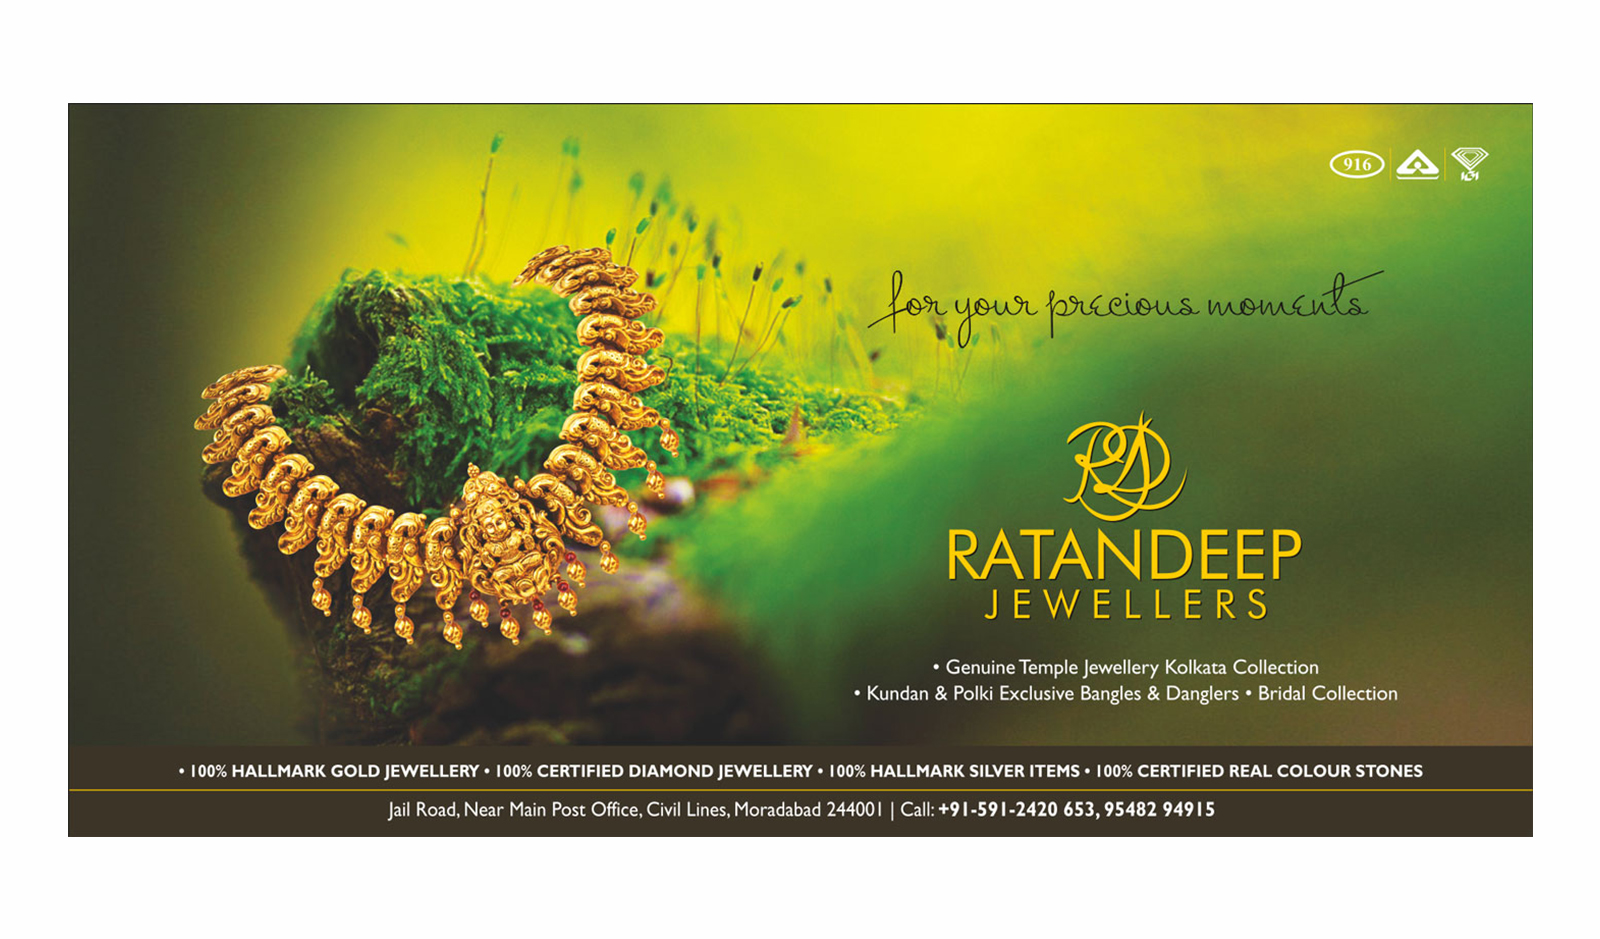 Ratandeep Jewellers